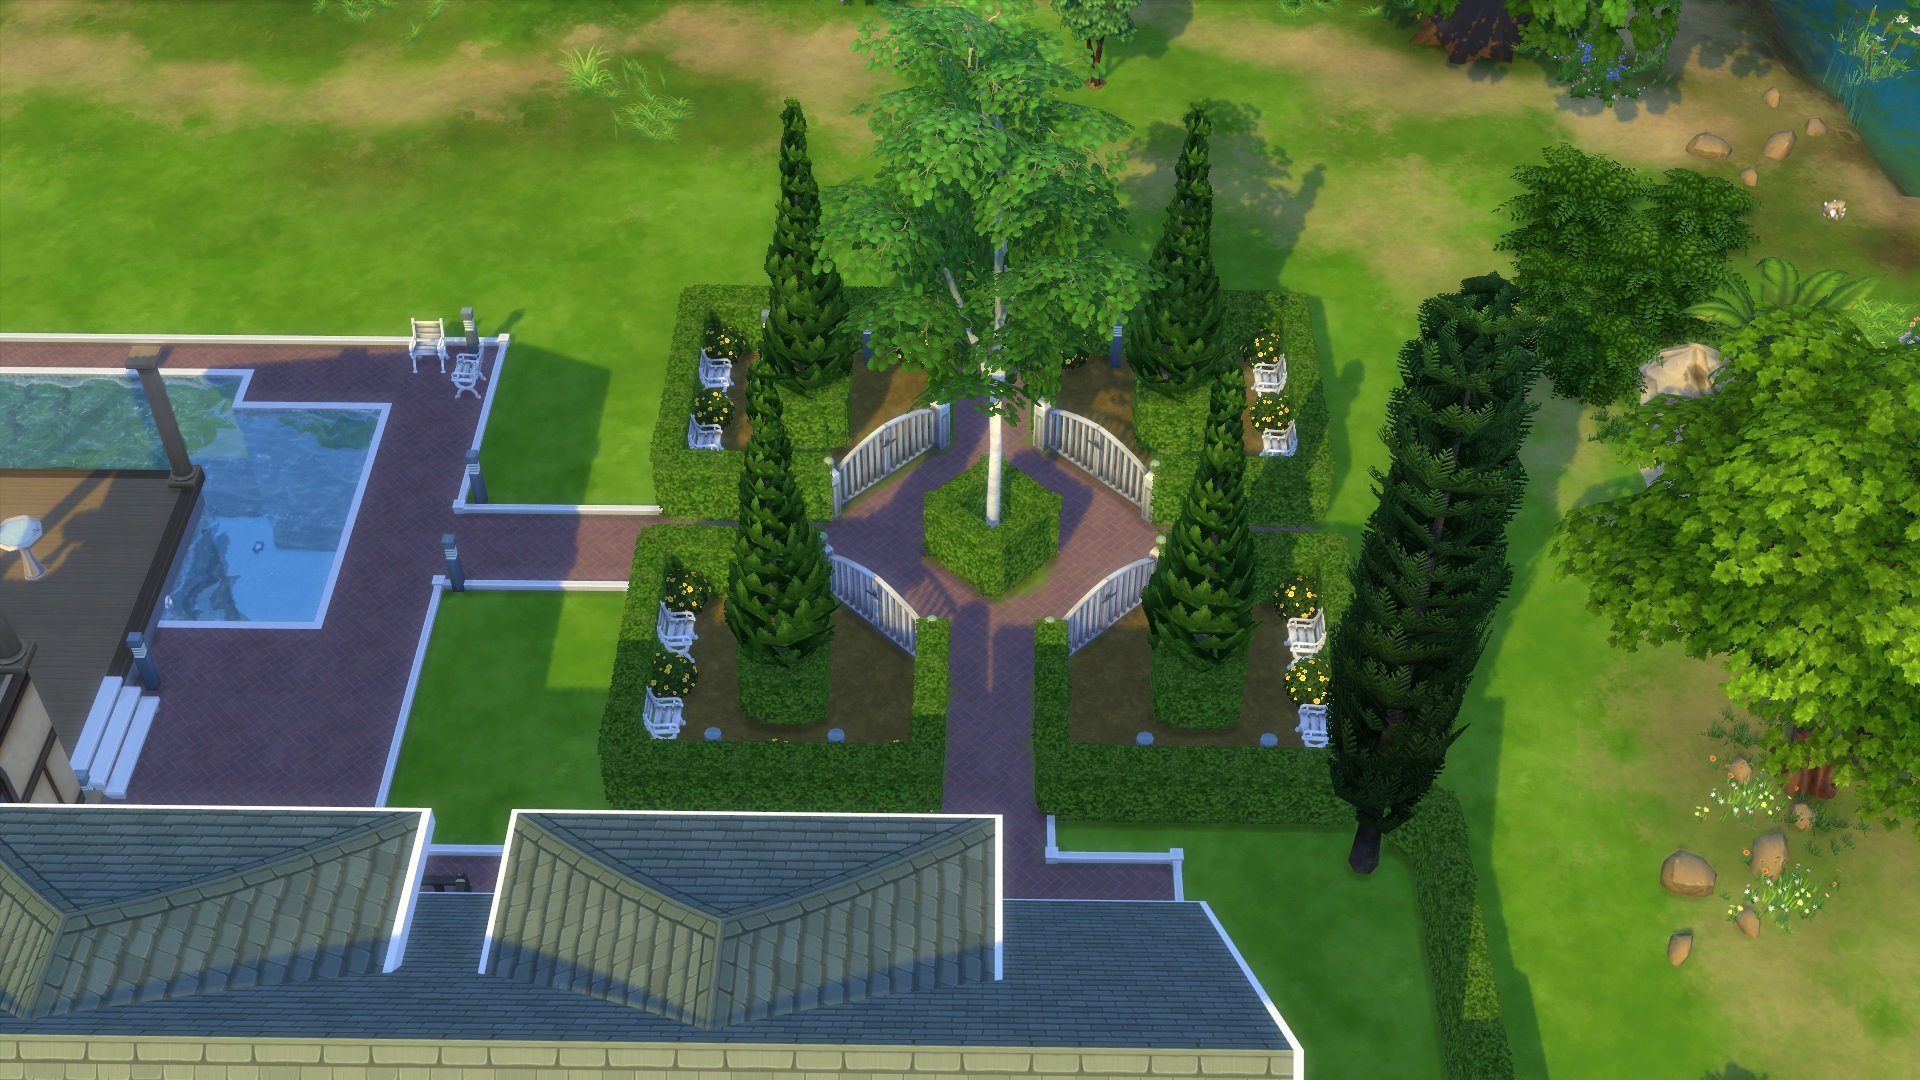 Sims 3 Pool Rund Drehen Mod The Sims The Sims 3 Landgraab Estate 10 Summer